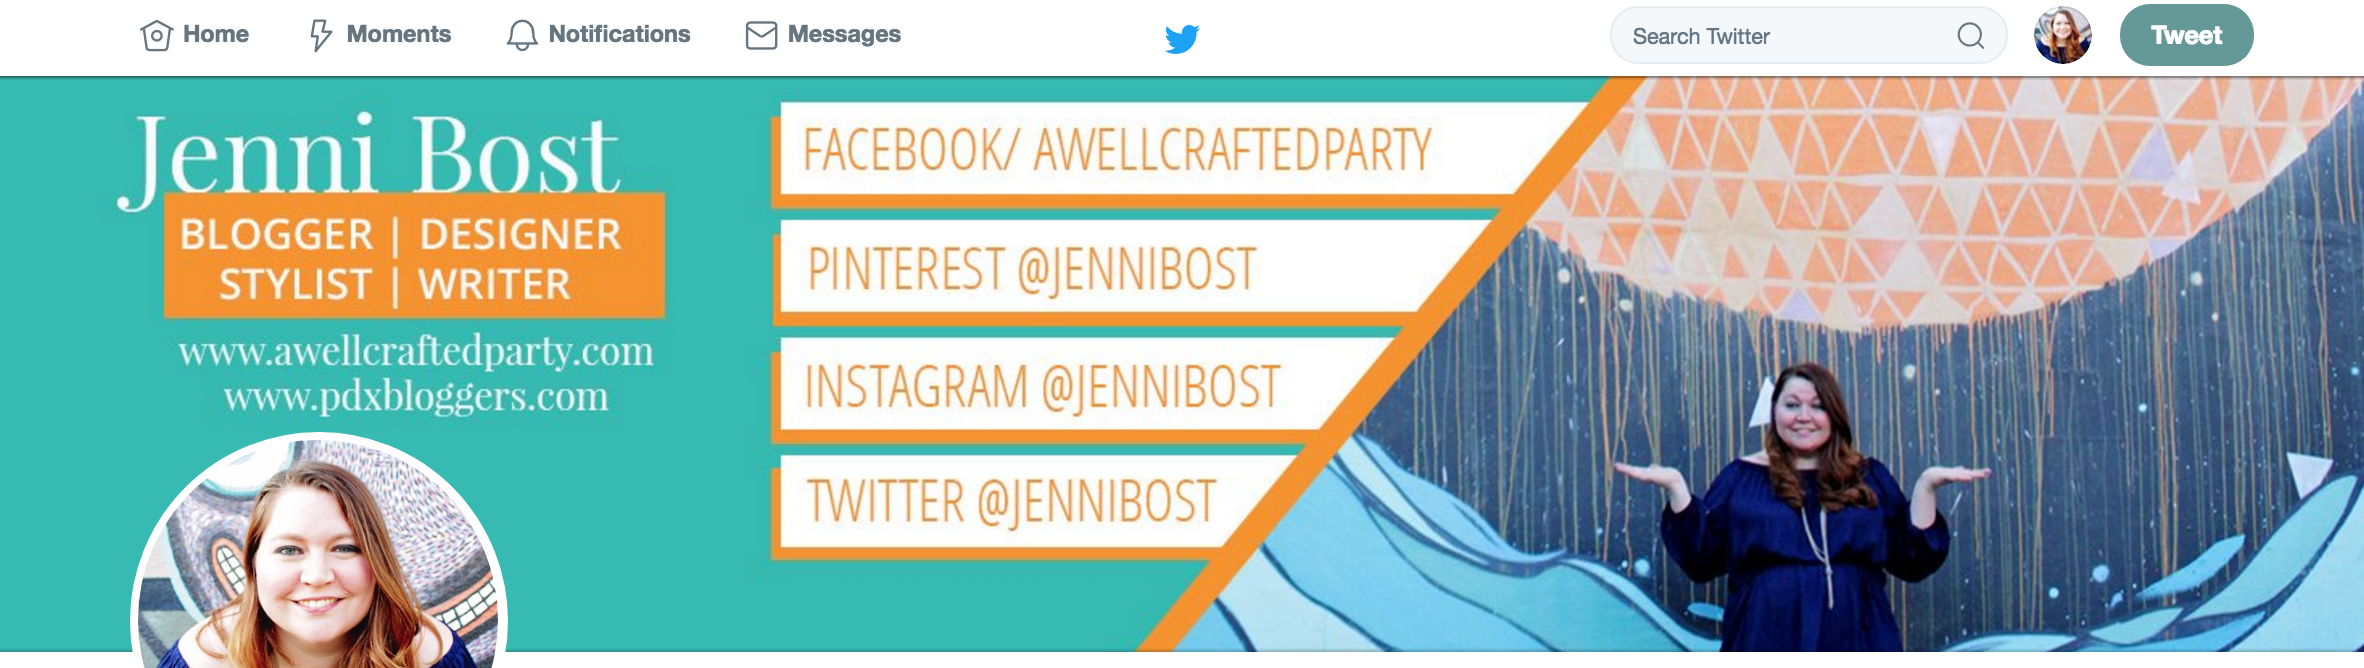 Social media profile branding | A Well Crafted Party